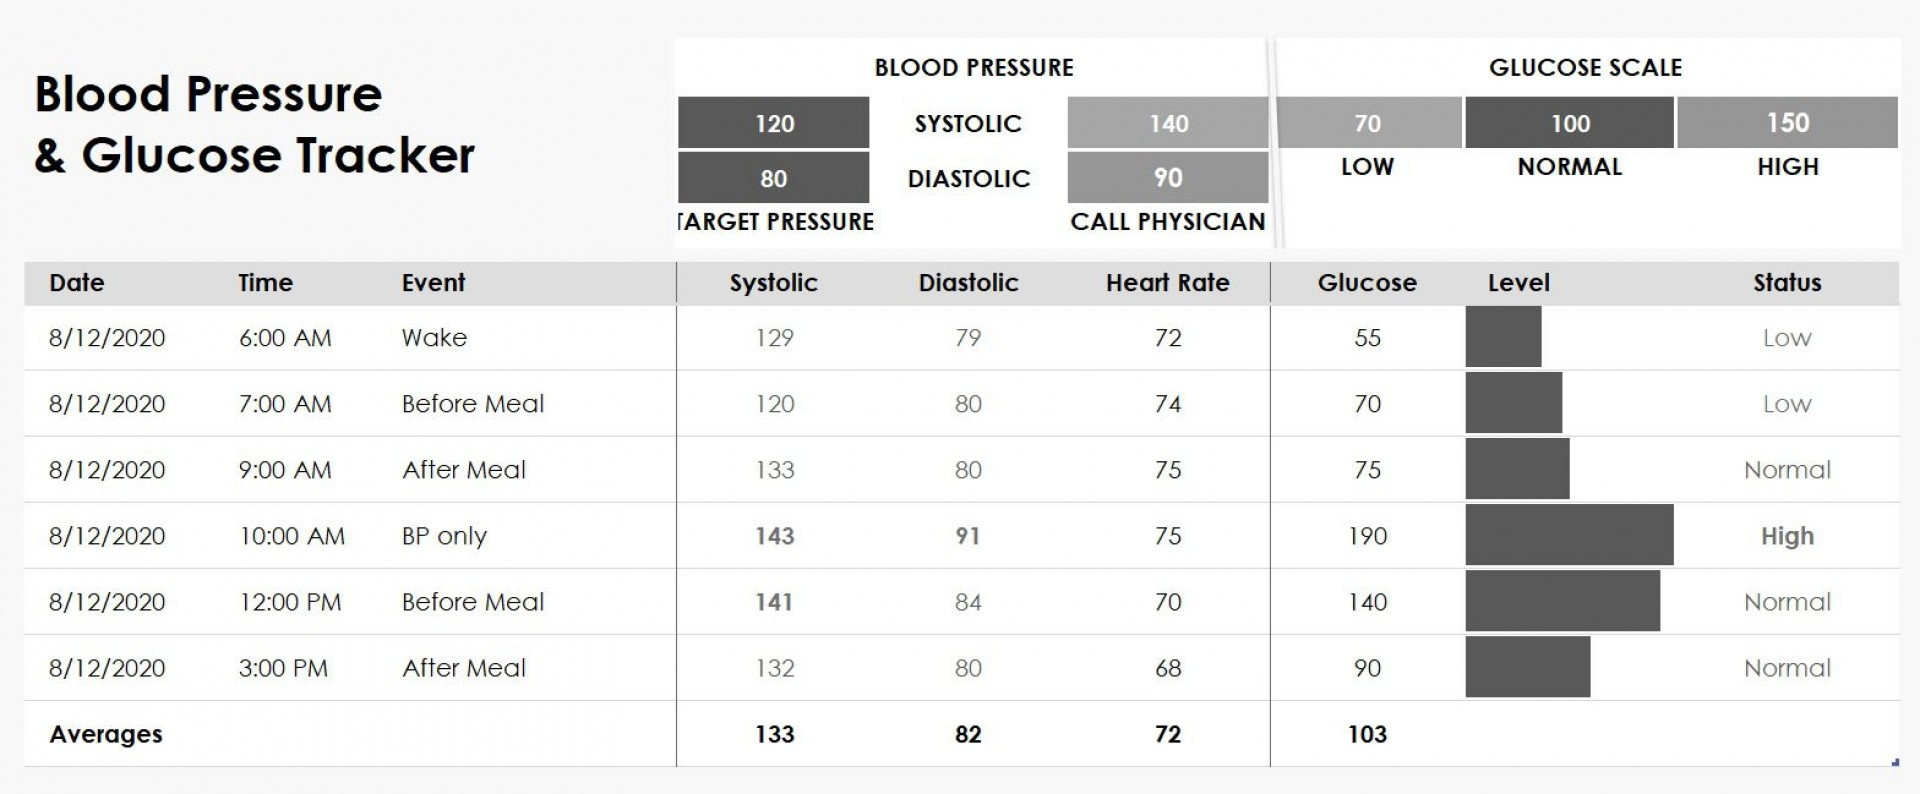 007 Stupendou Blood Glucose Spreadsheet Template Image  Tracking1920